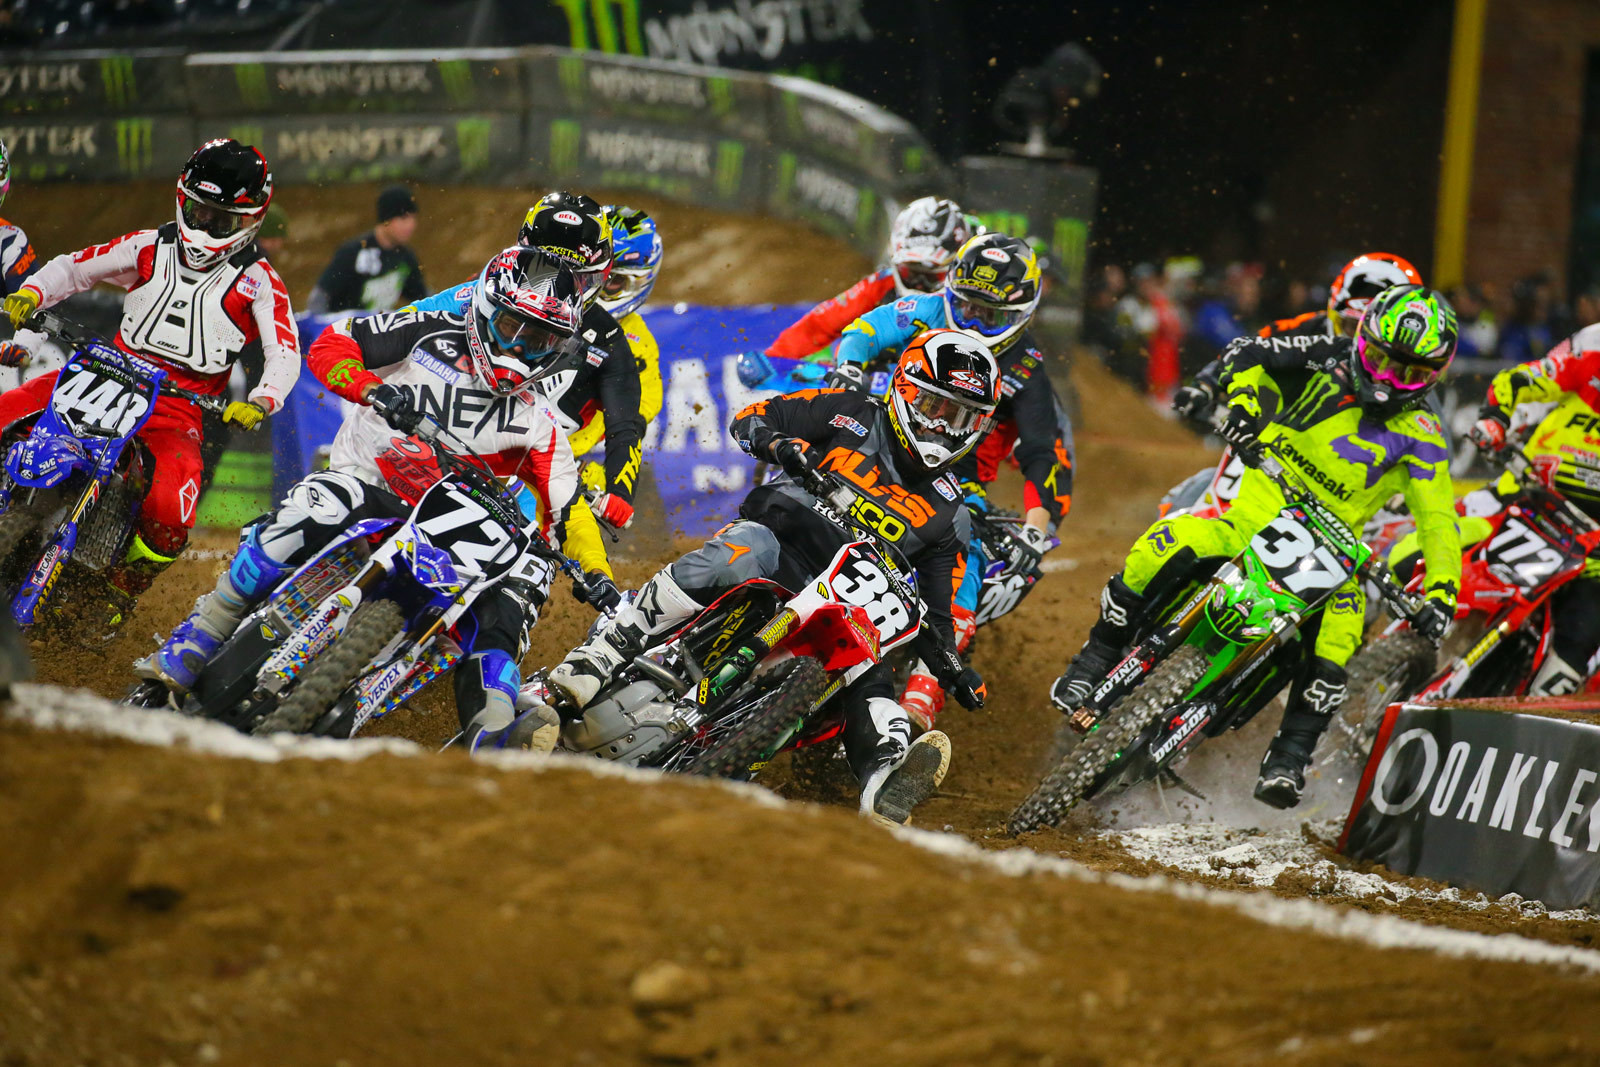 250 Heat 1 Start - Photo Blast: San Diego 1 - Motocross Pictures - Vital MX